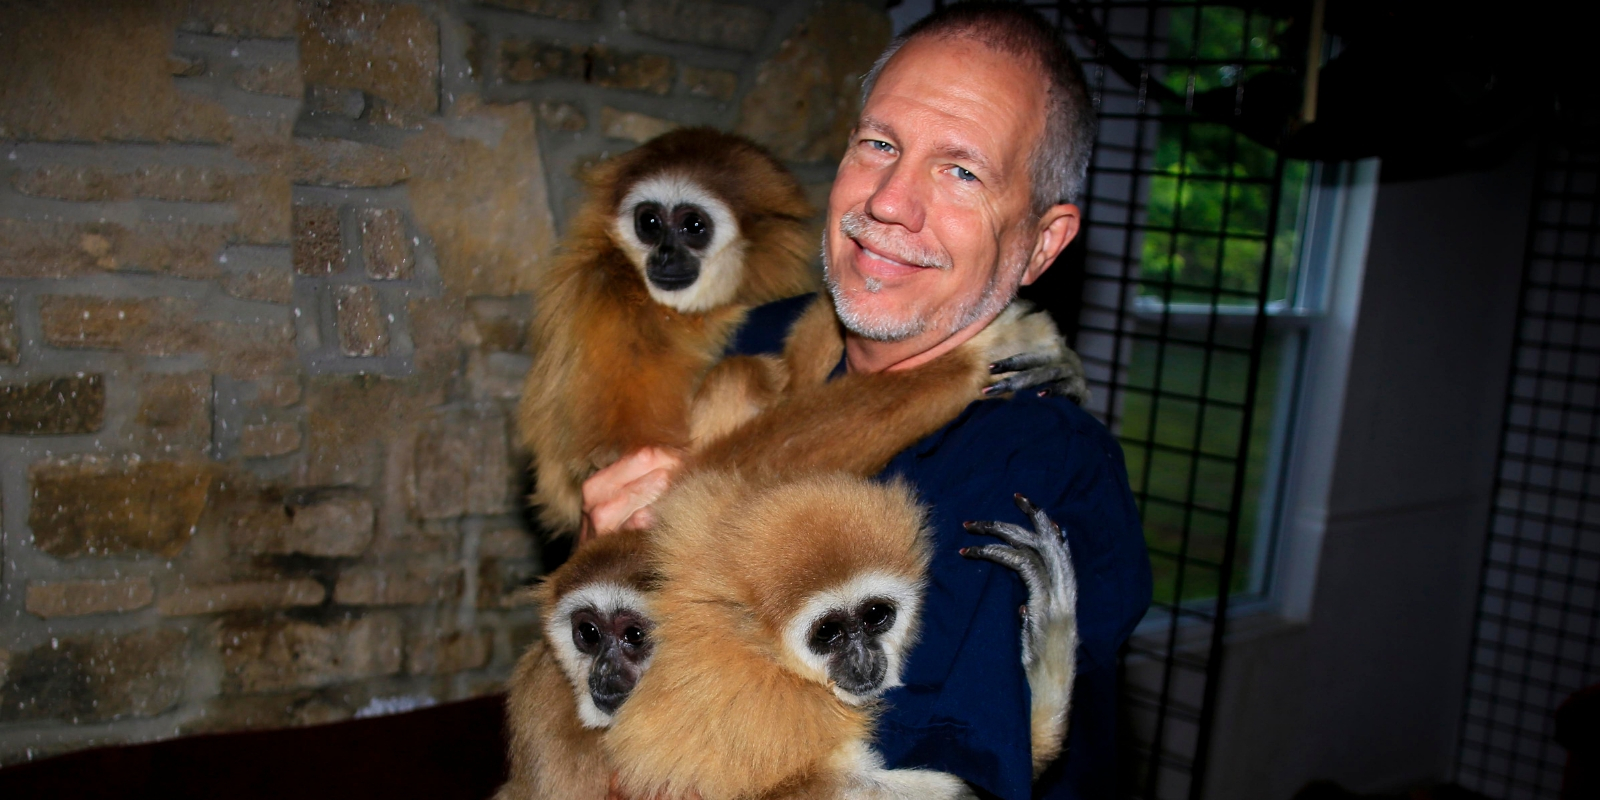 Dana Savorelli smiles while being hugged by 3 gibbon monkeys from Monkey Island Rescue